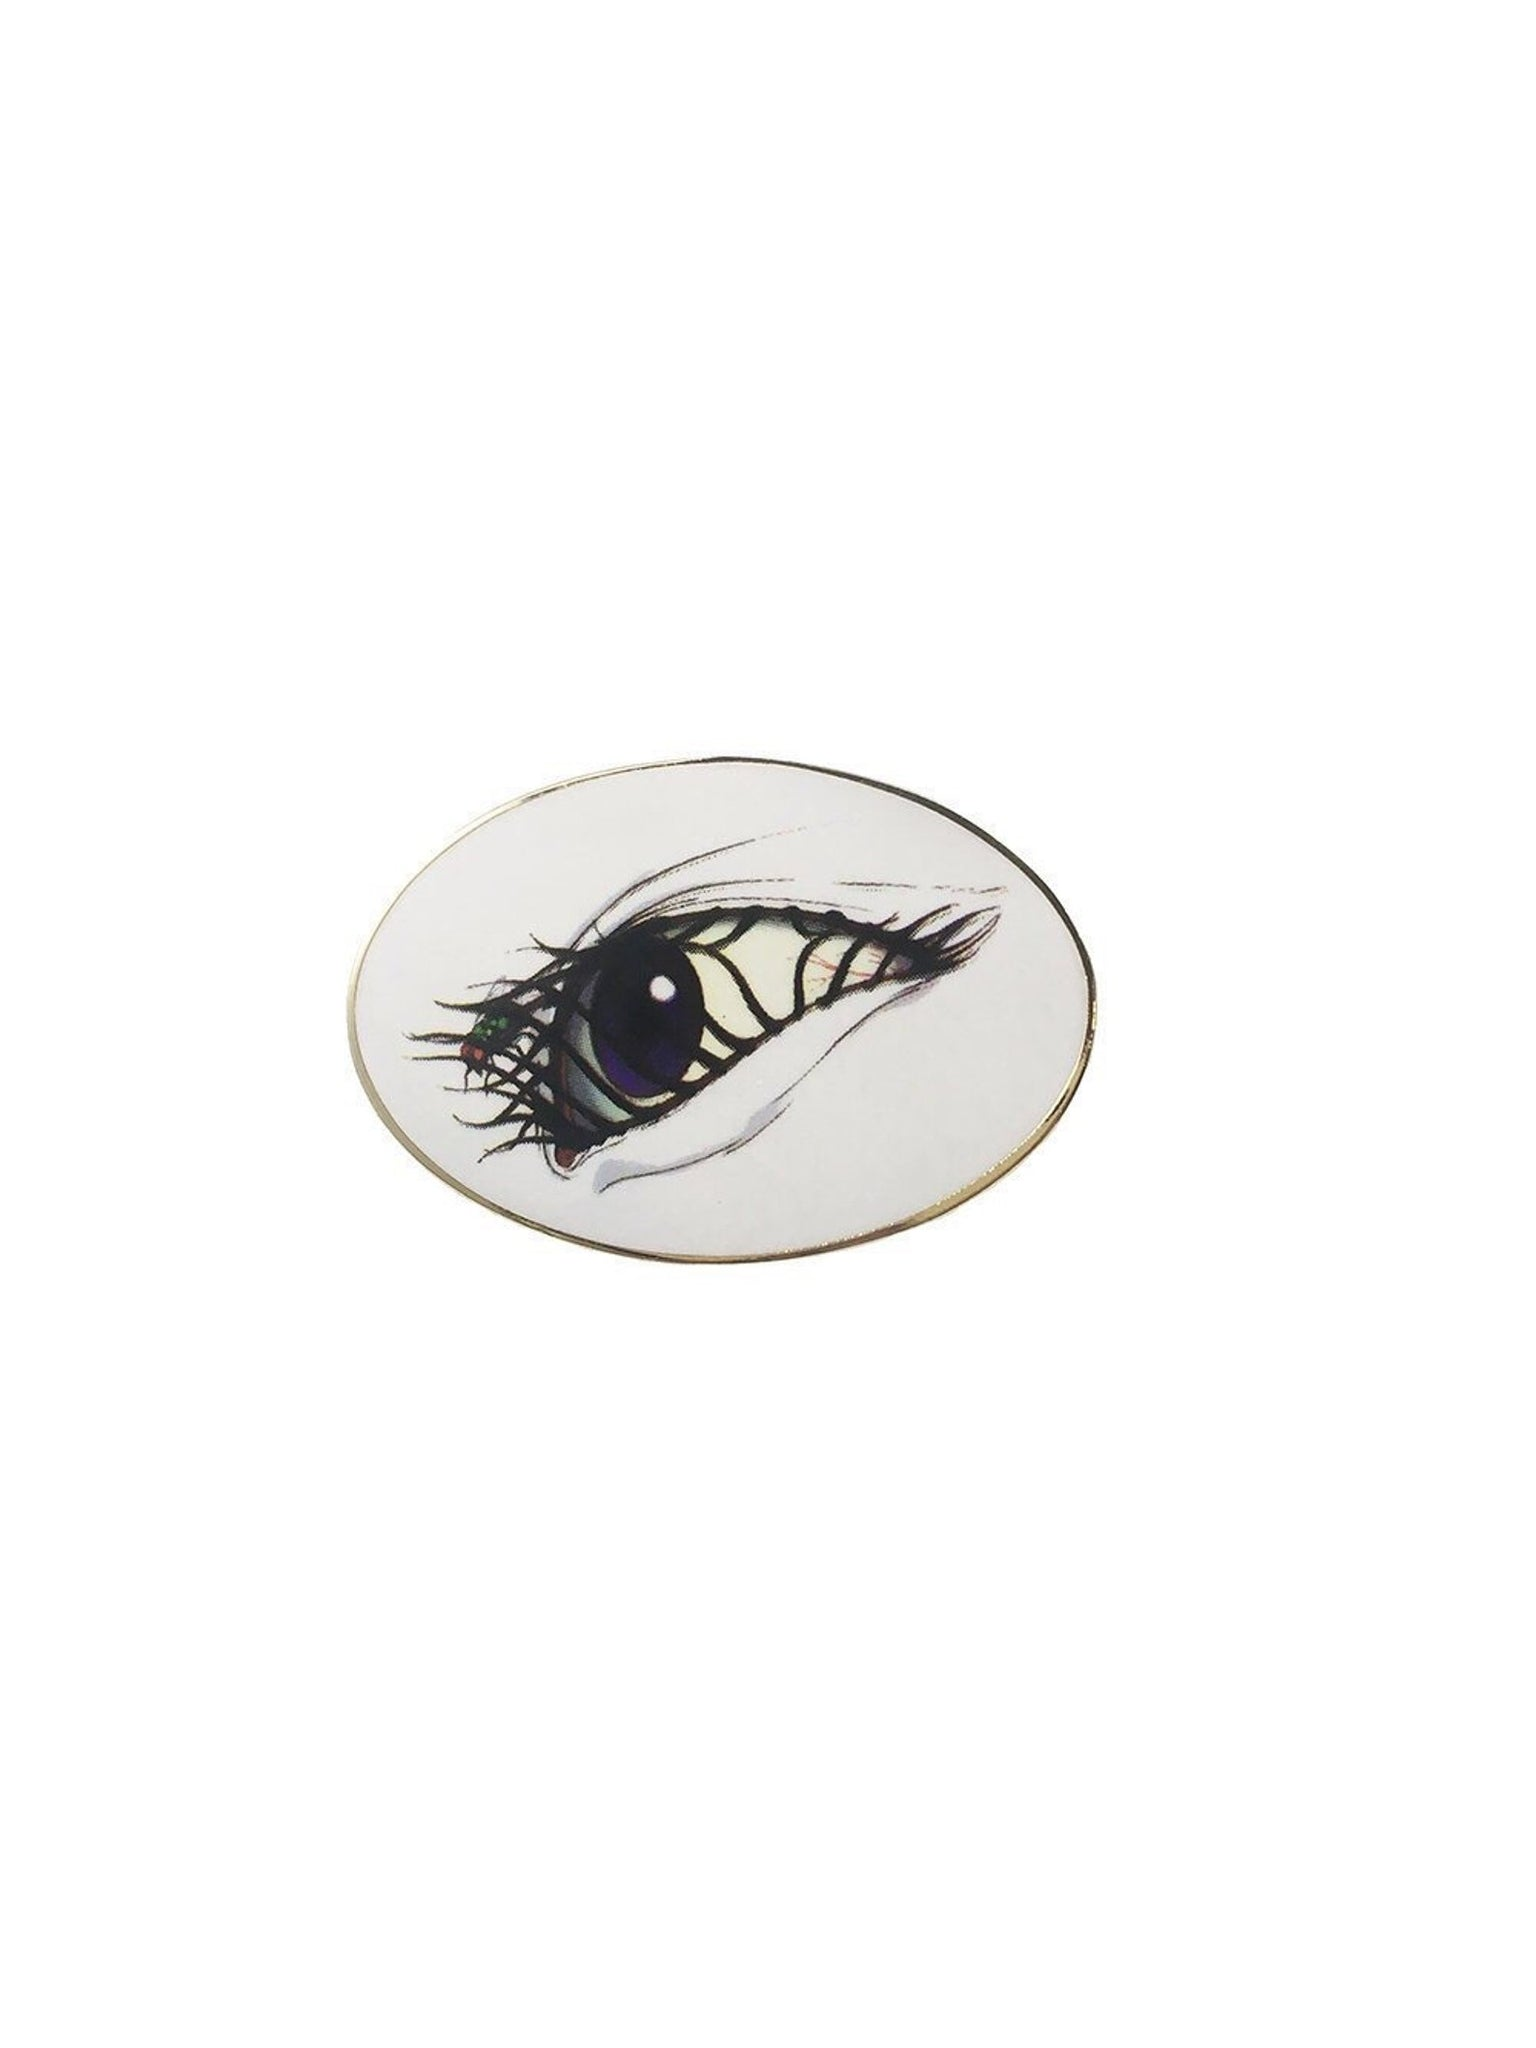 Aeon Flux Eye Pin